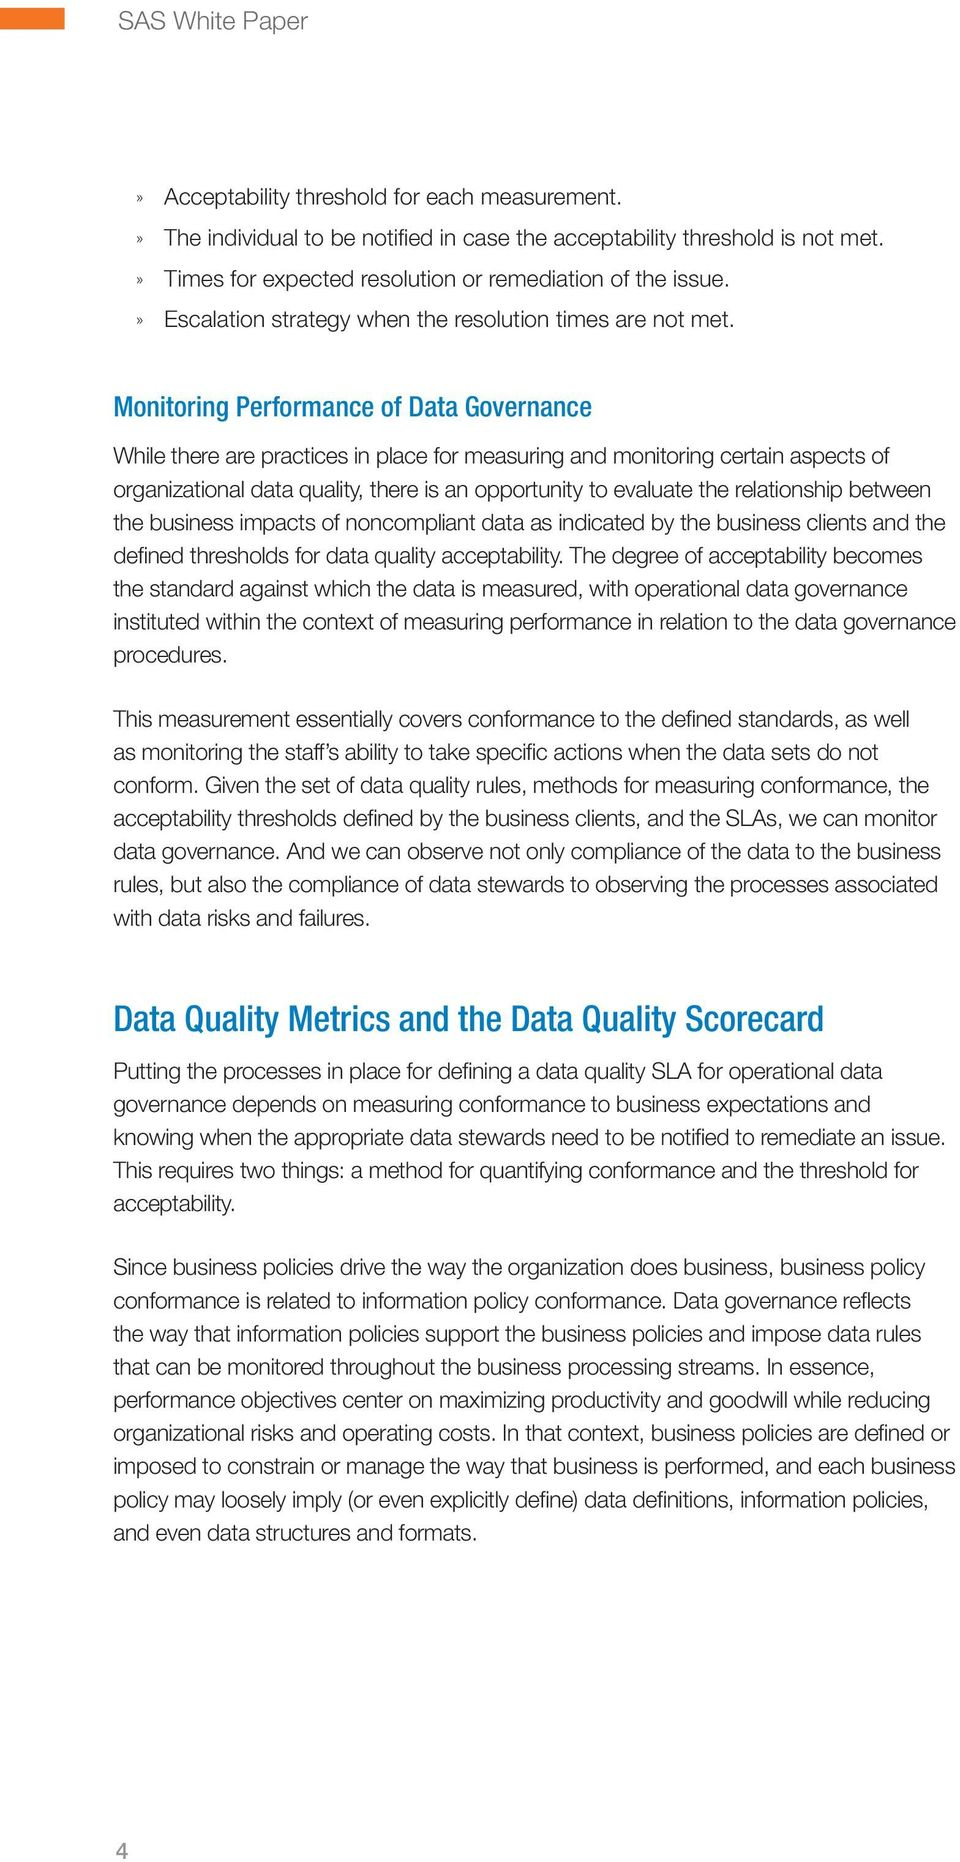 Monitoring Performance of Data Governance While there are practices in place for measuring and monitoring certain aspects of organizational data quality, there is an opportunity to evaluate the